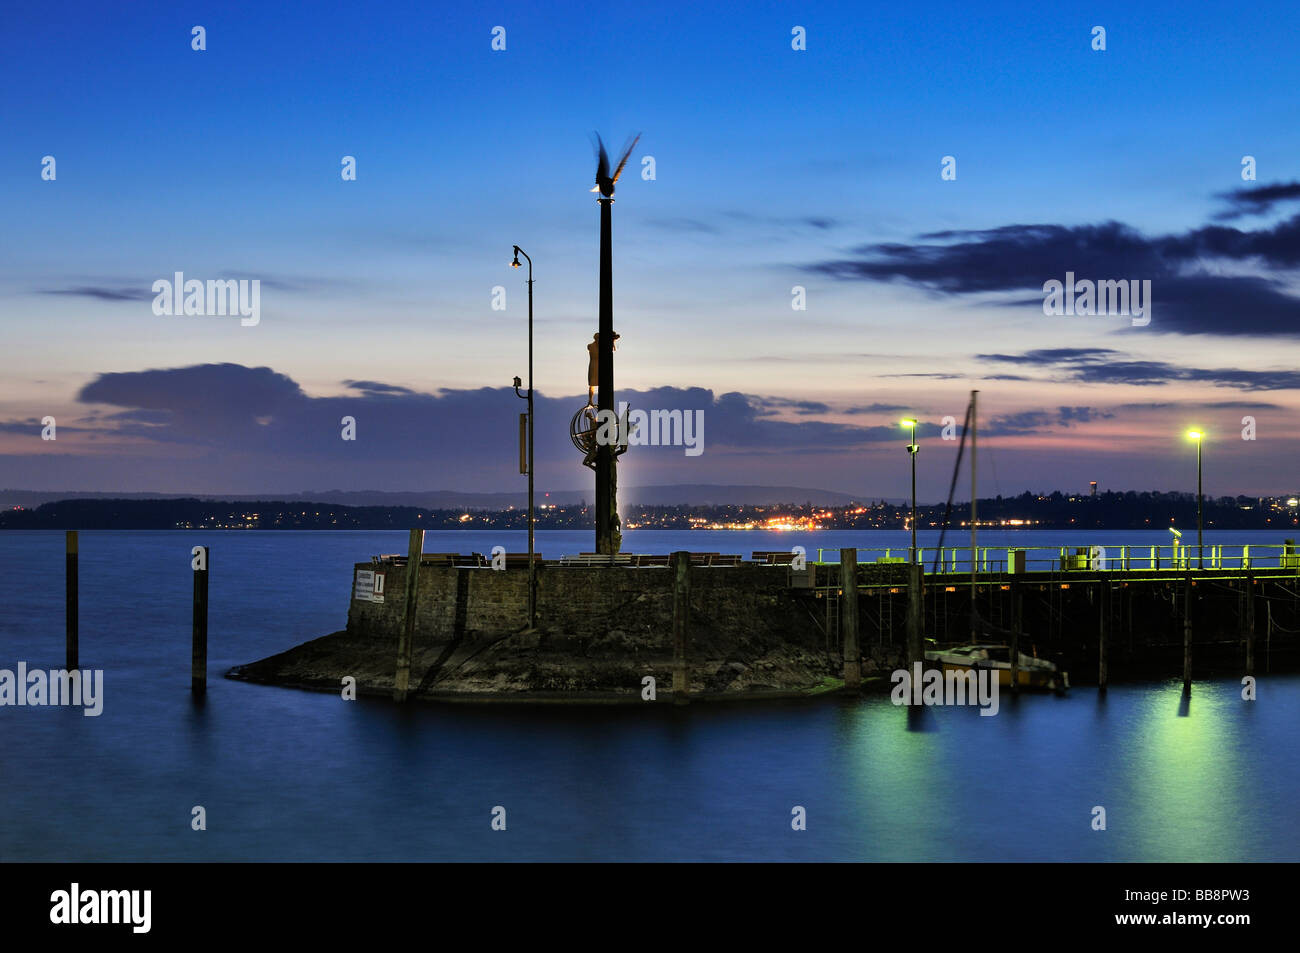 Harbour mole with the guidance statue in Meerburg on Lake Constance, Baden-Wuerttemberg, Germany, Europe - Stock Image